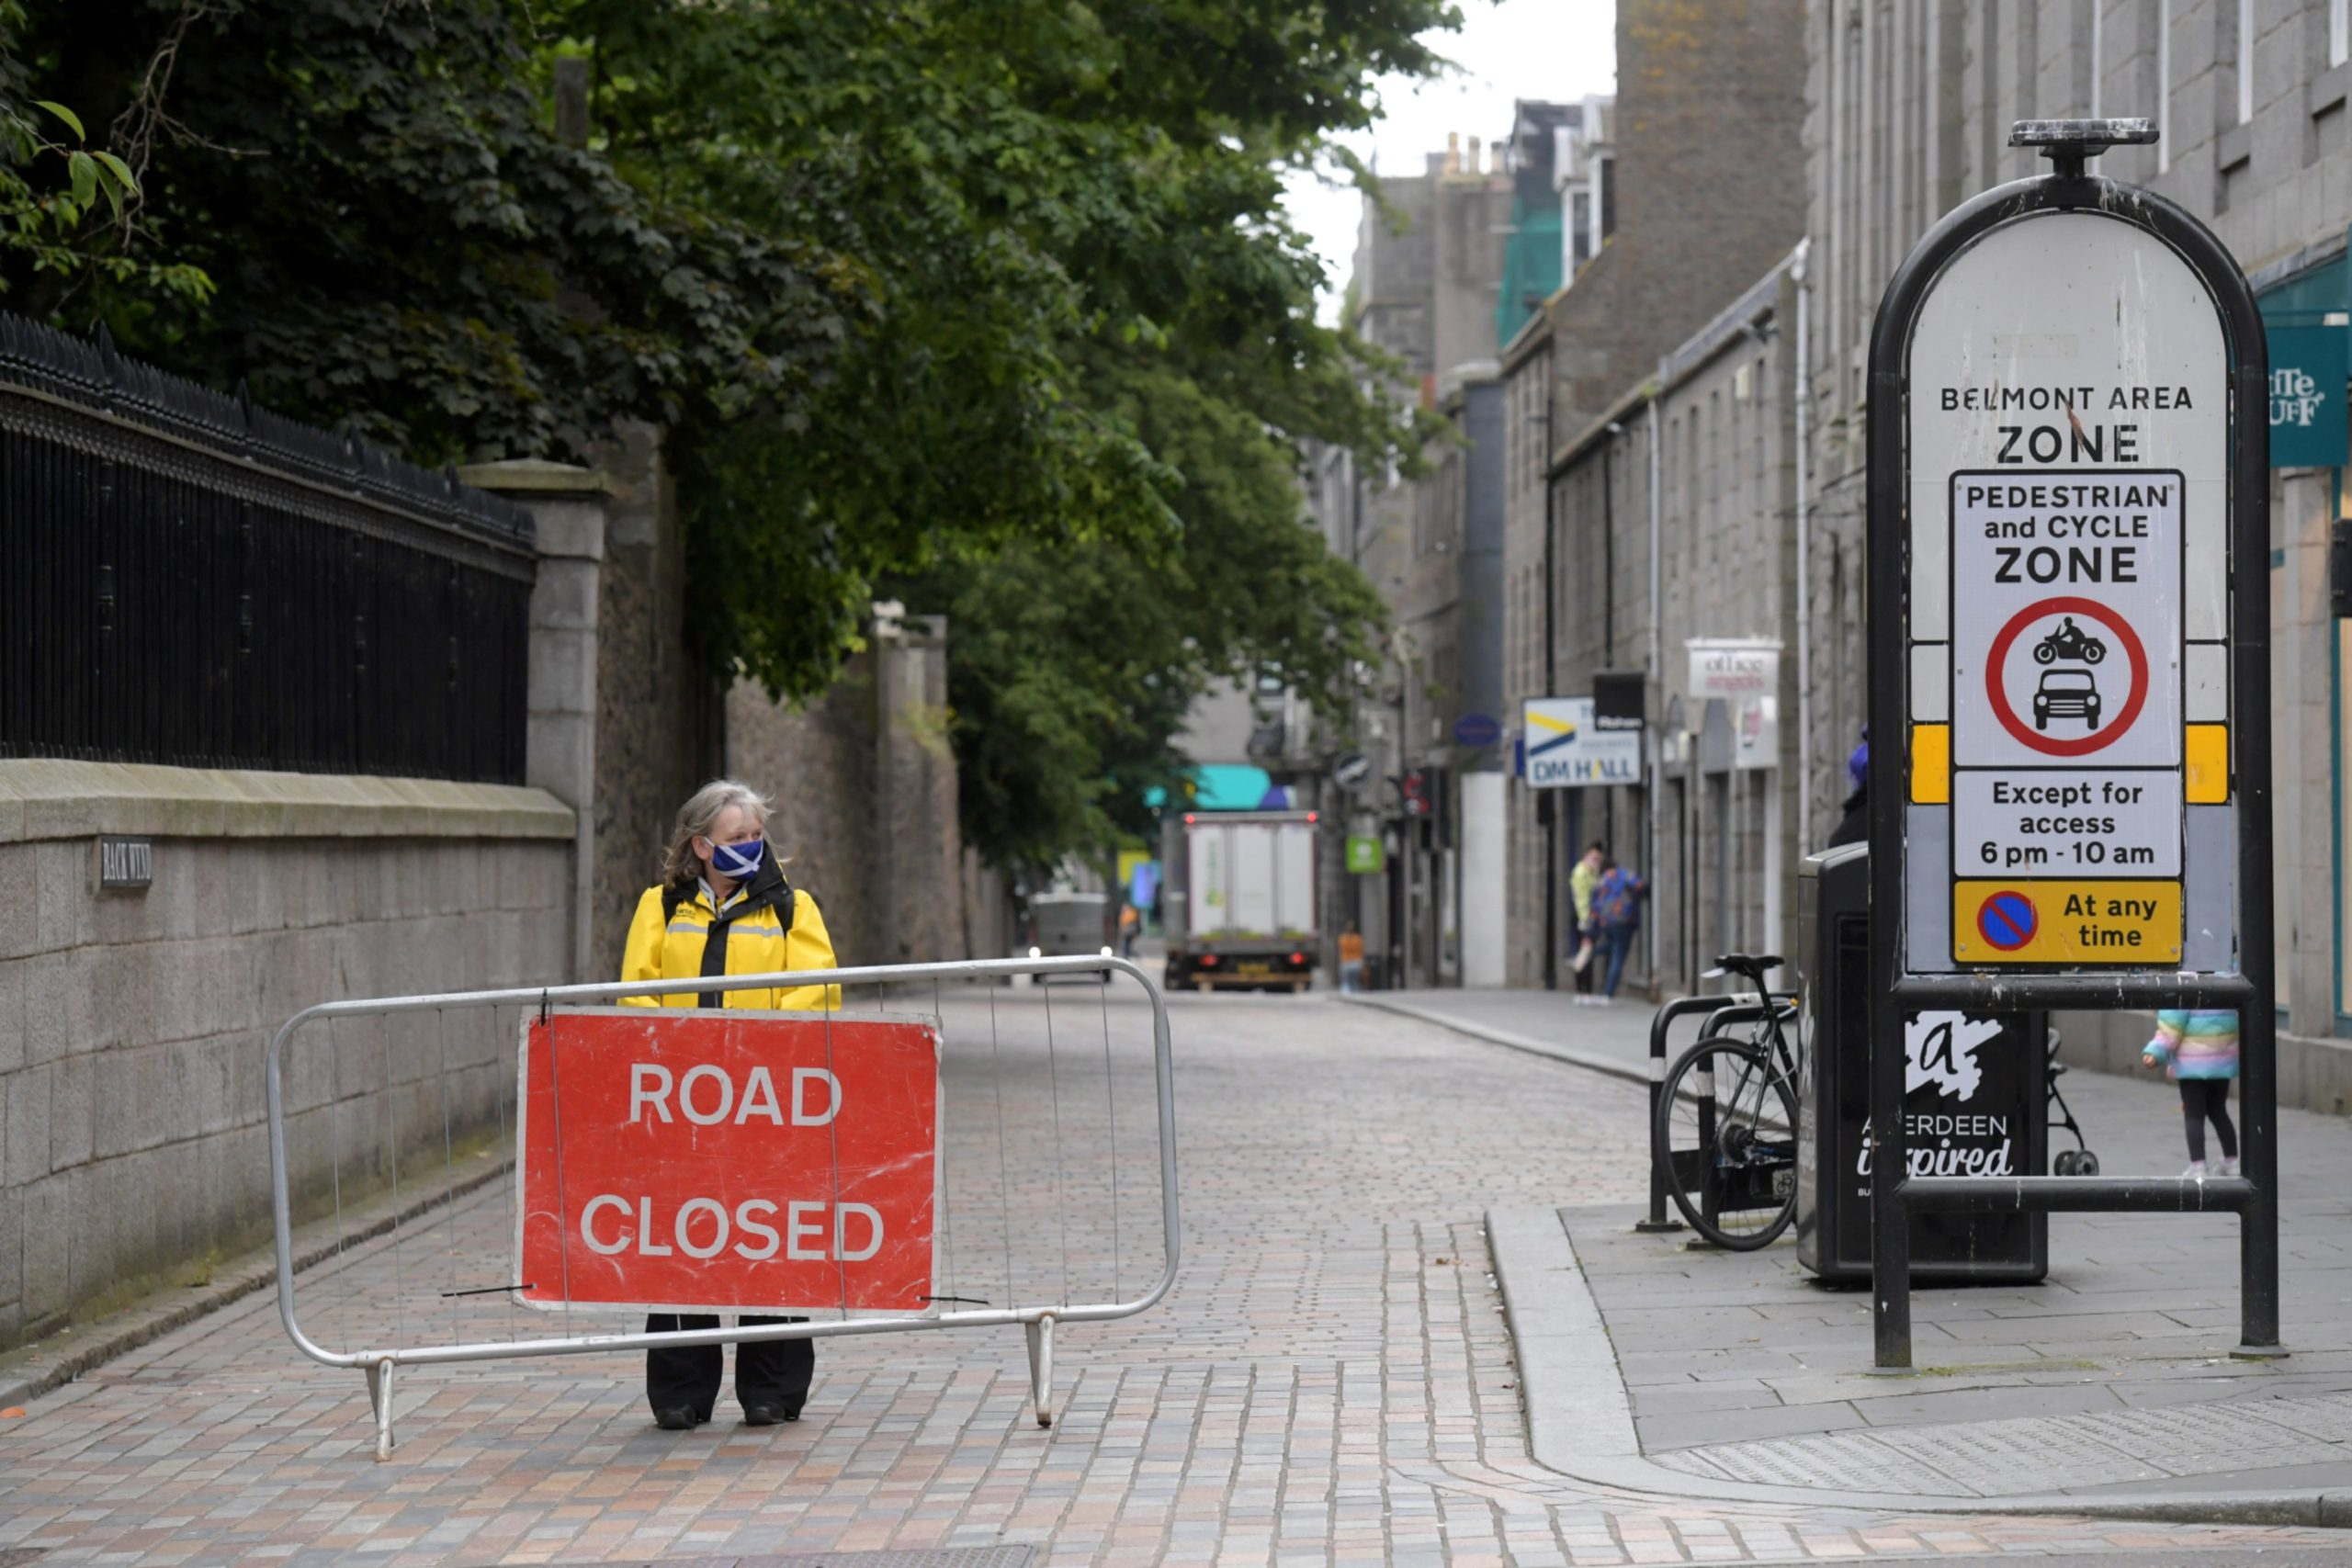 A security guard at the barriers on Union Street. Picture by Kath Flannery